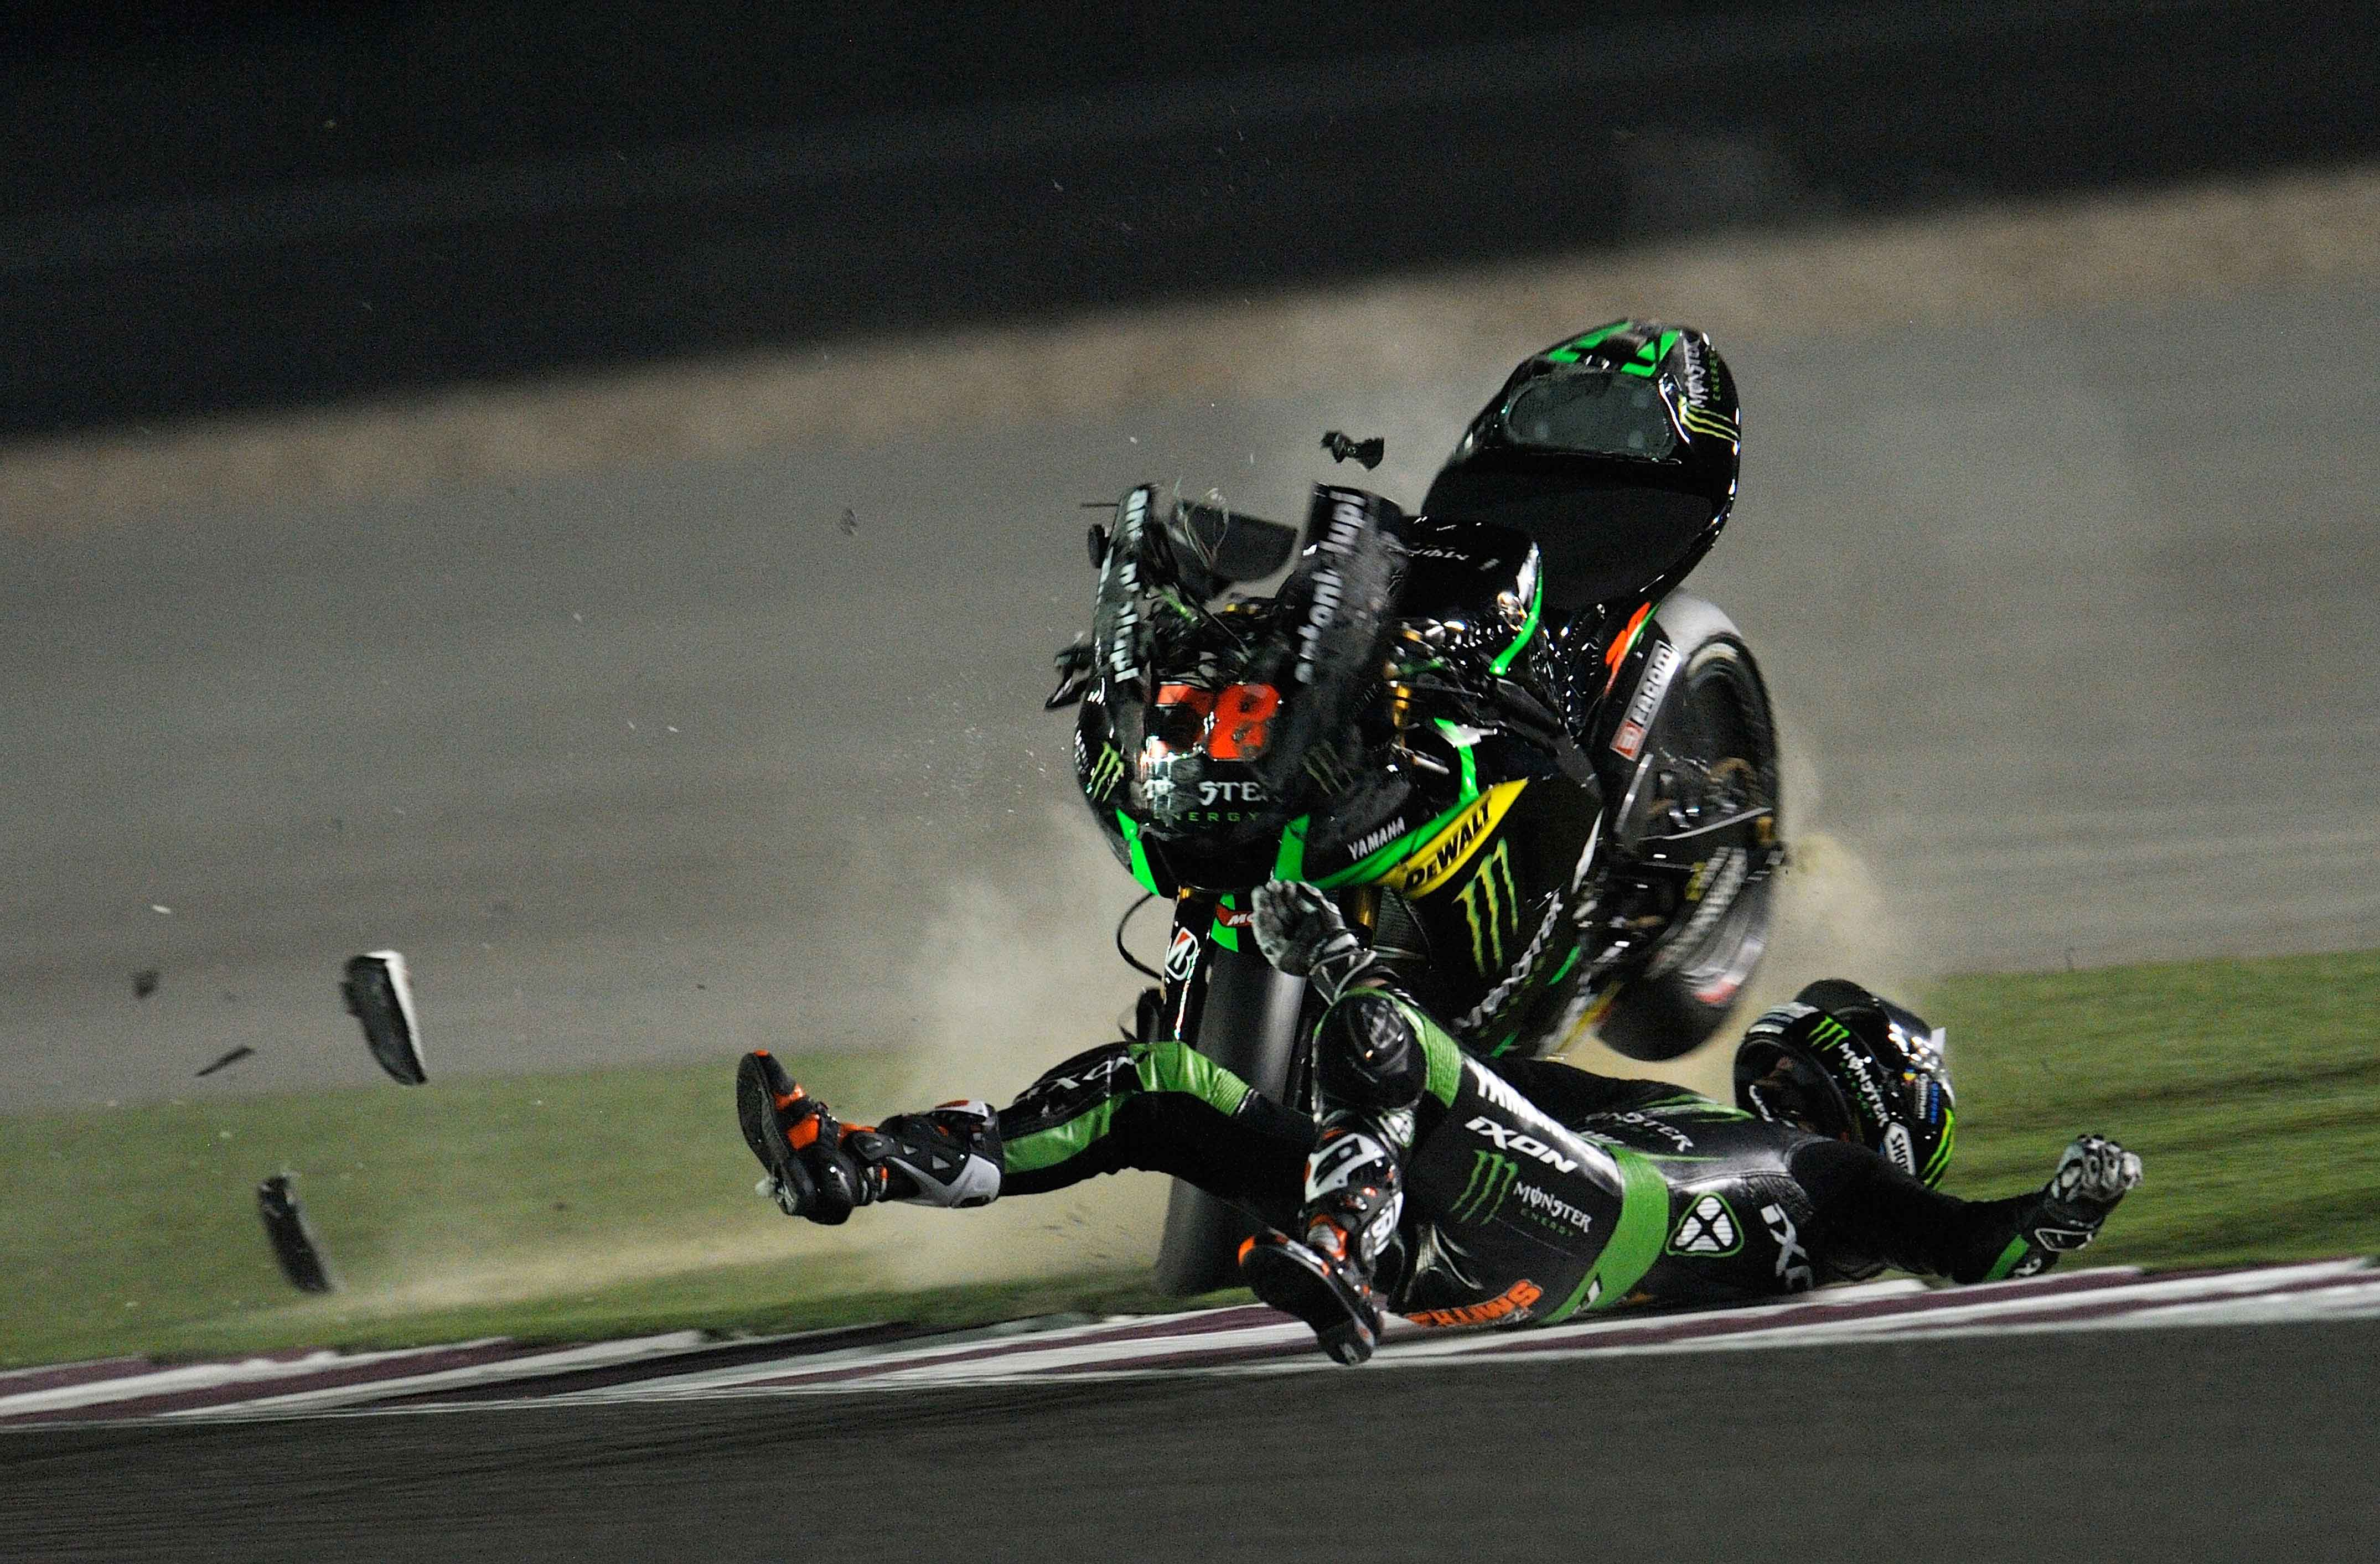 MotoGP in pictures: Bradley Smith's spectacular high-side